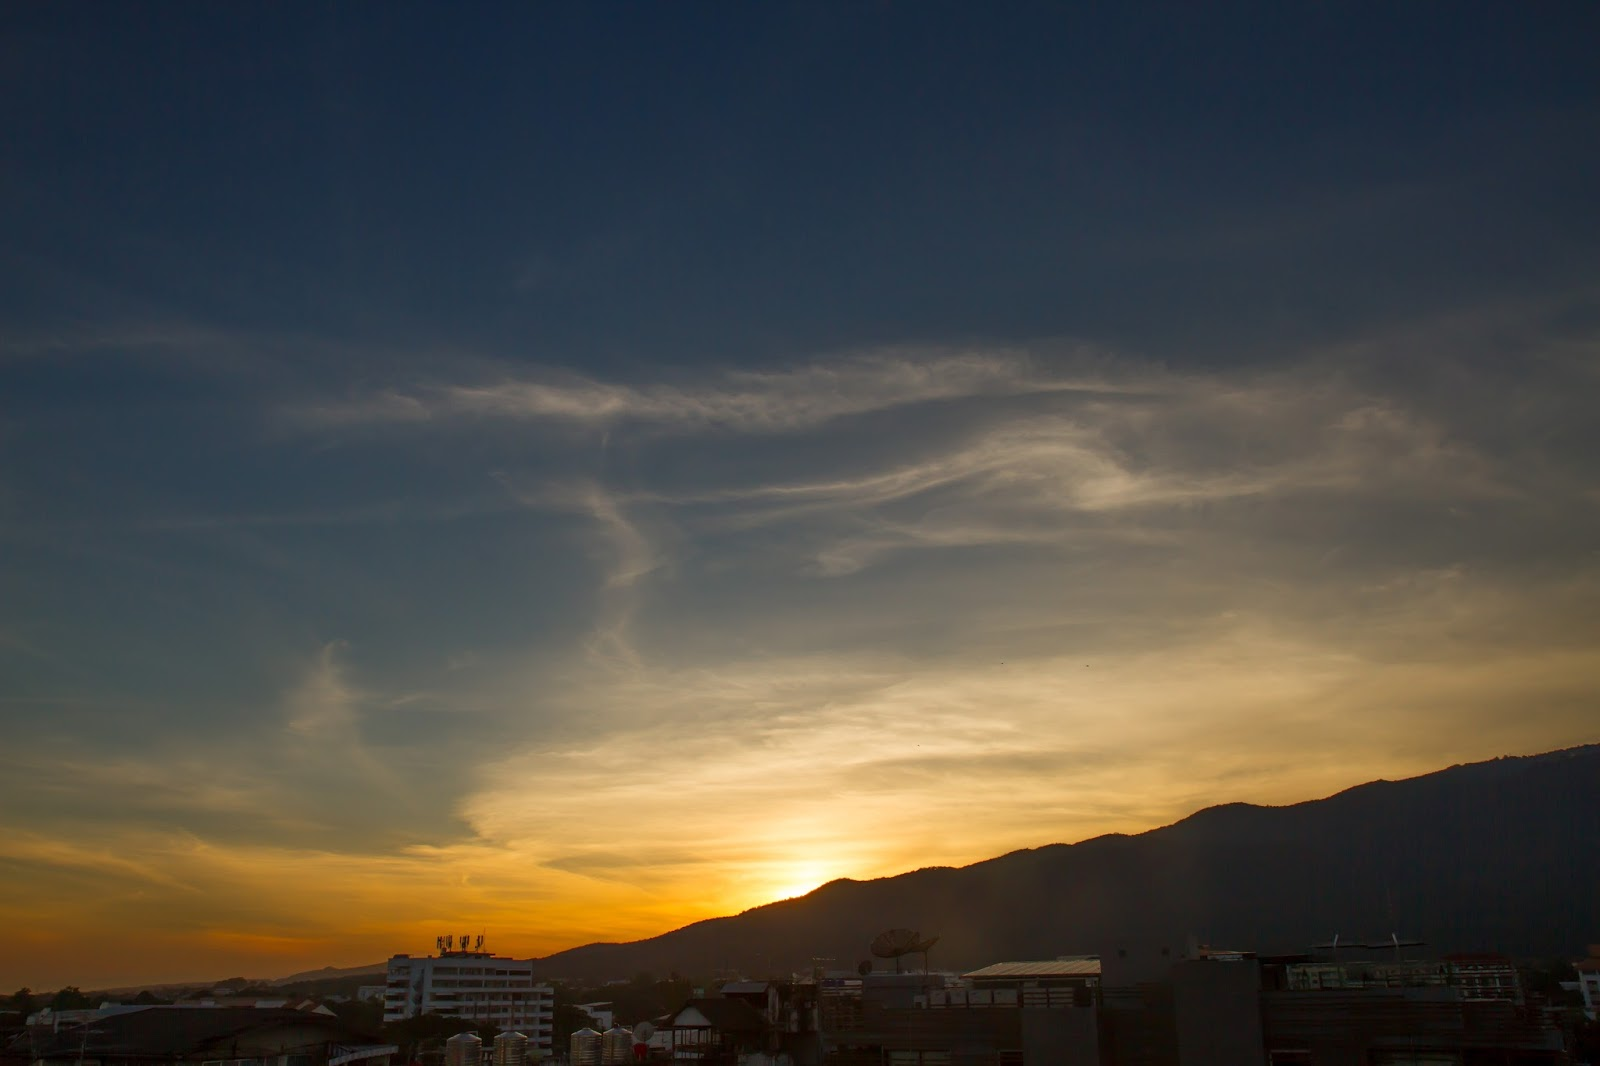 Sunset over Doi Suthep in Chiang Mai Thailand